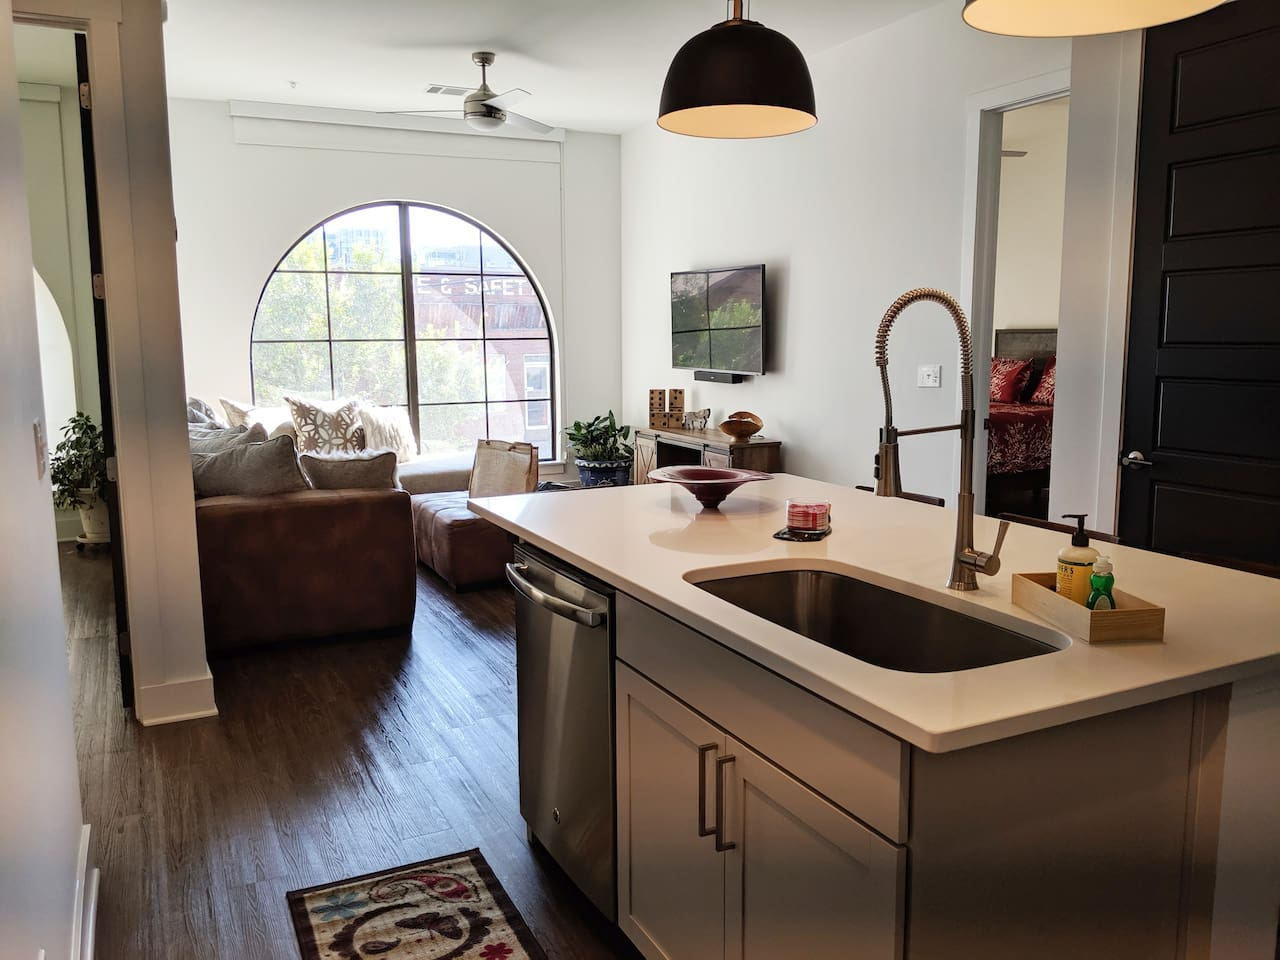 Kitchen with all the amenities: Large sink, dish washer, washing machine and more, all for you to use during your stay with us.